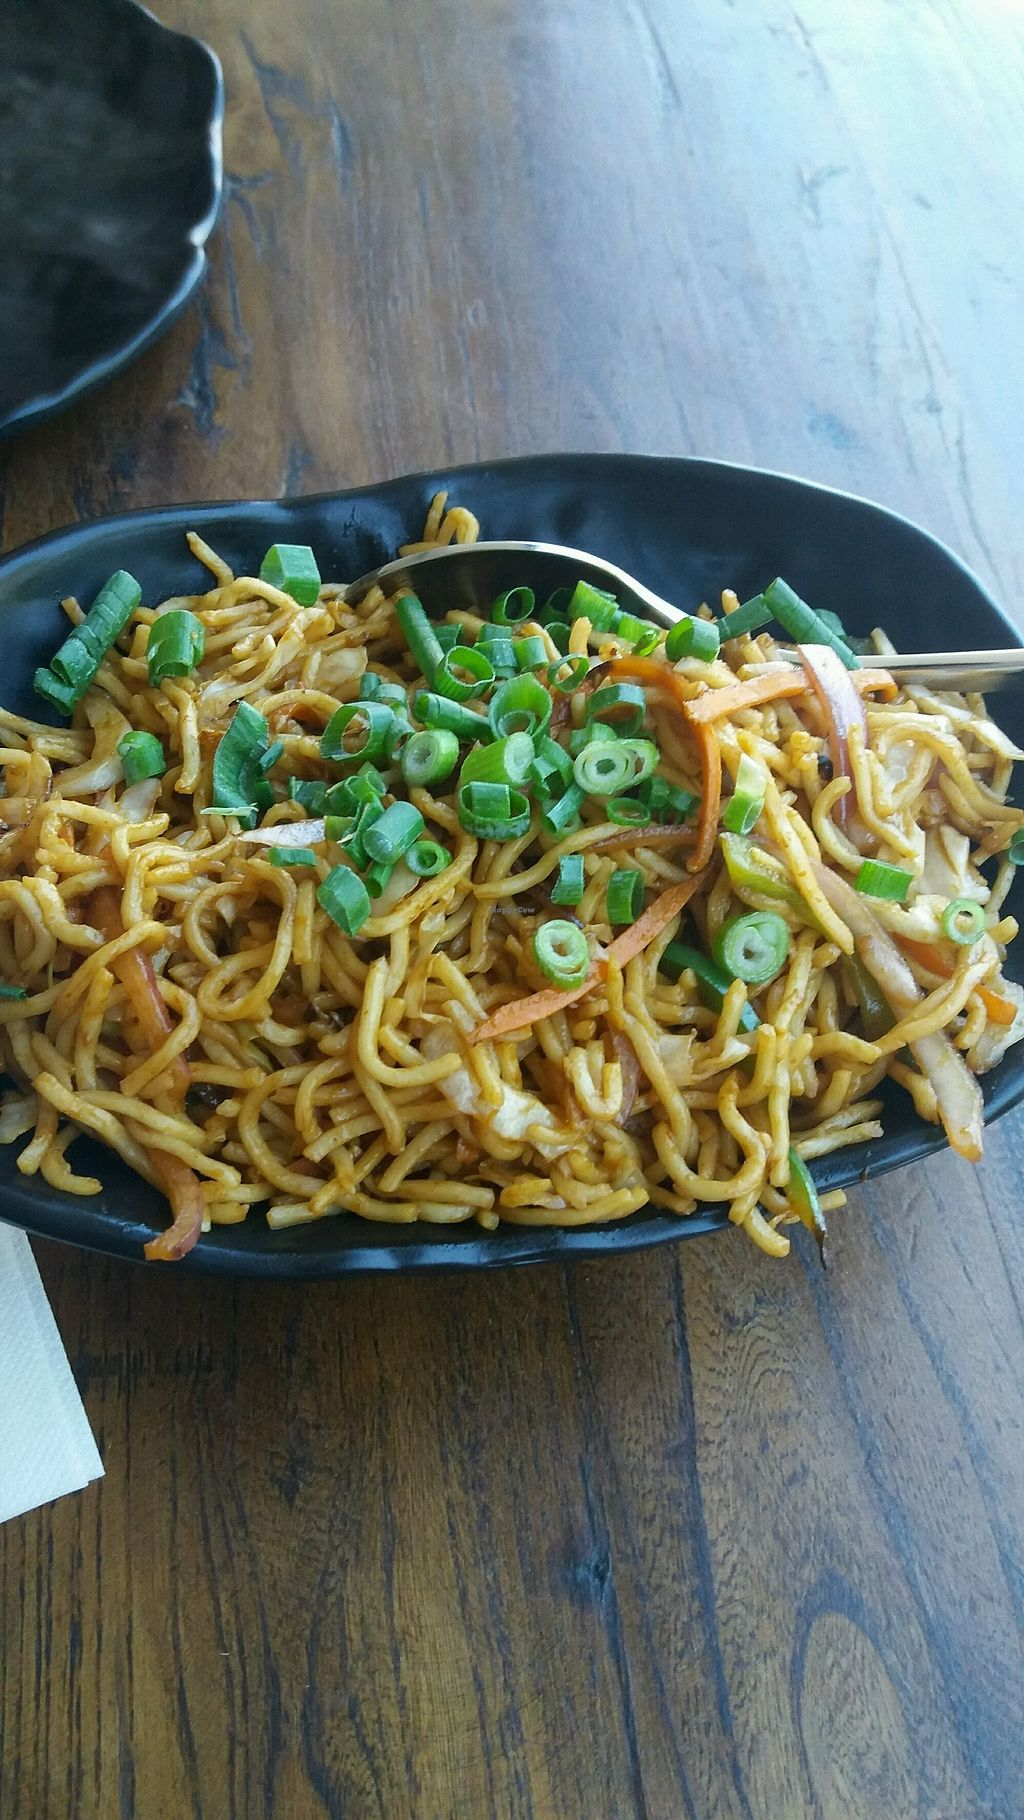 """Photo of Chatkazz  by <a href=""""/members/profile/veganvirtues"""">veganvirtues</a> <br/>mixed veggie with noodles <br/> December 14, 2017  - <a href='/contact/abuse/image/84678/335378'>Report</a>"""